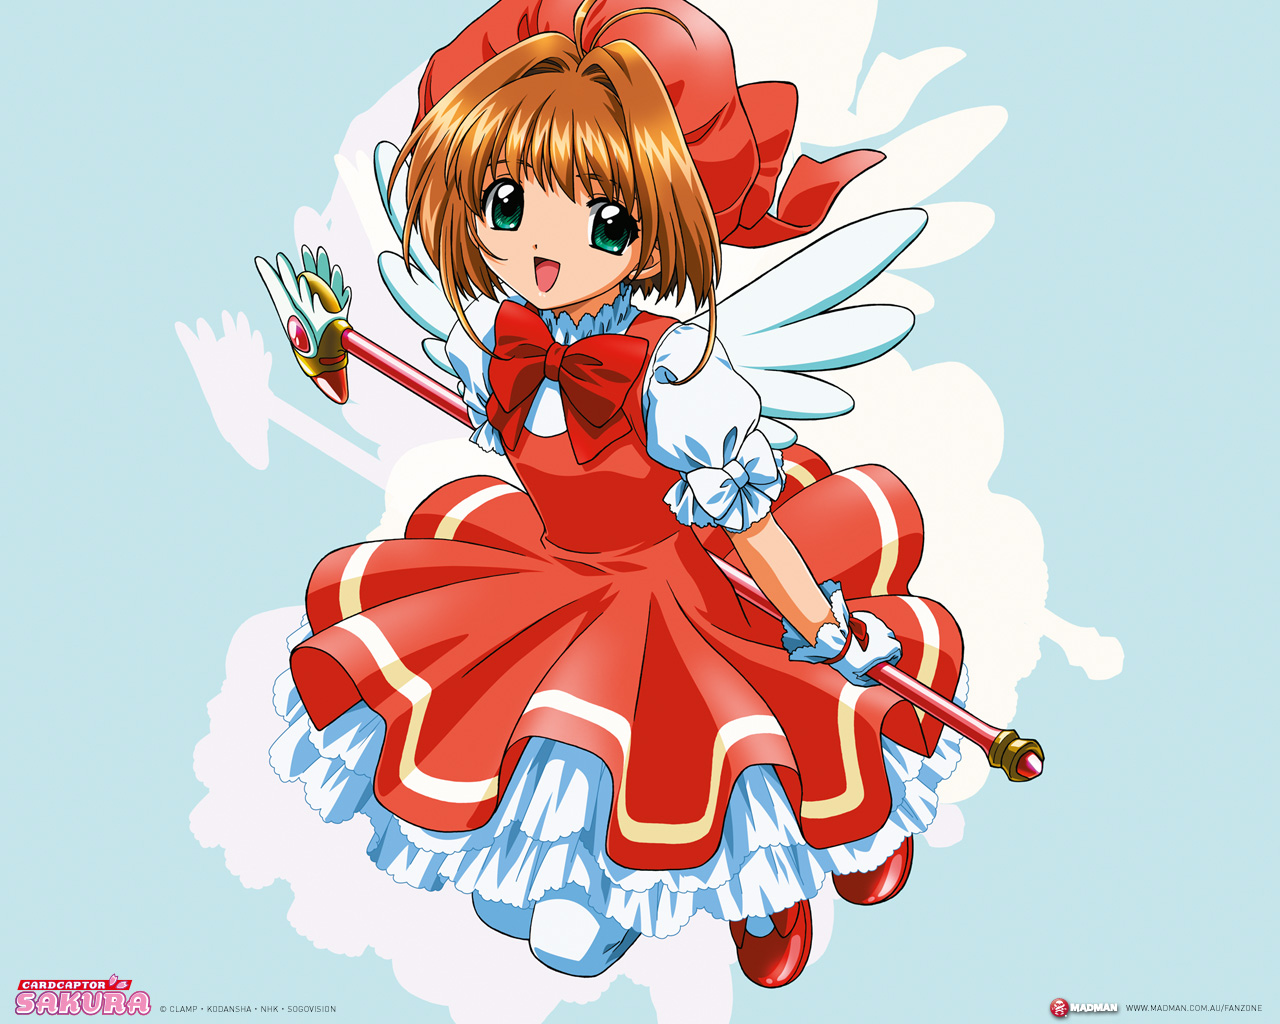 Cardcaptor Sakura HD wallpapers, Desktop wallpaper - most viewed